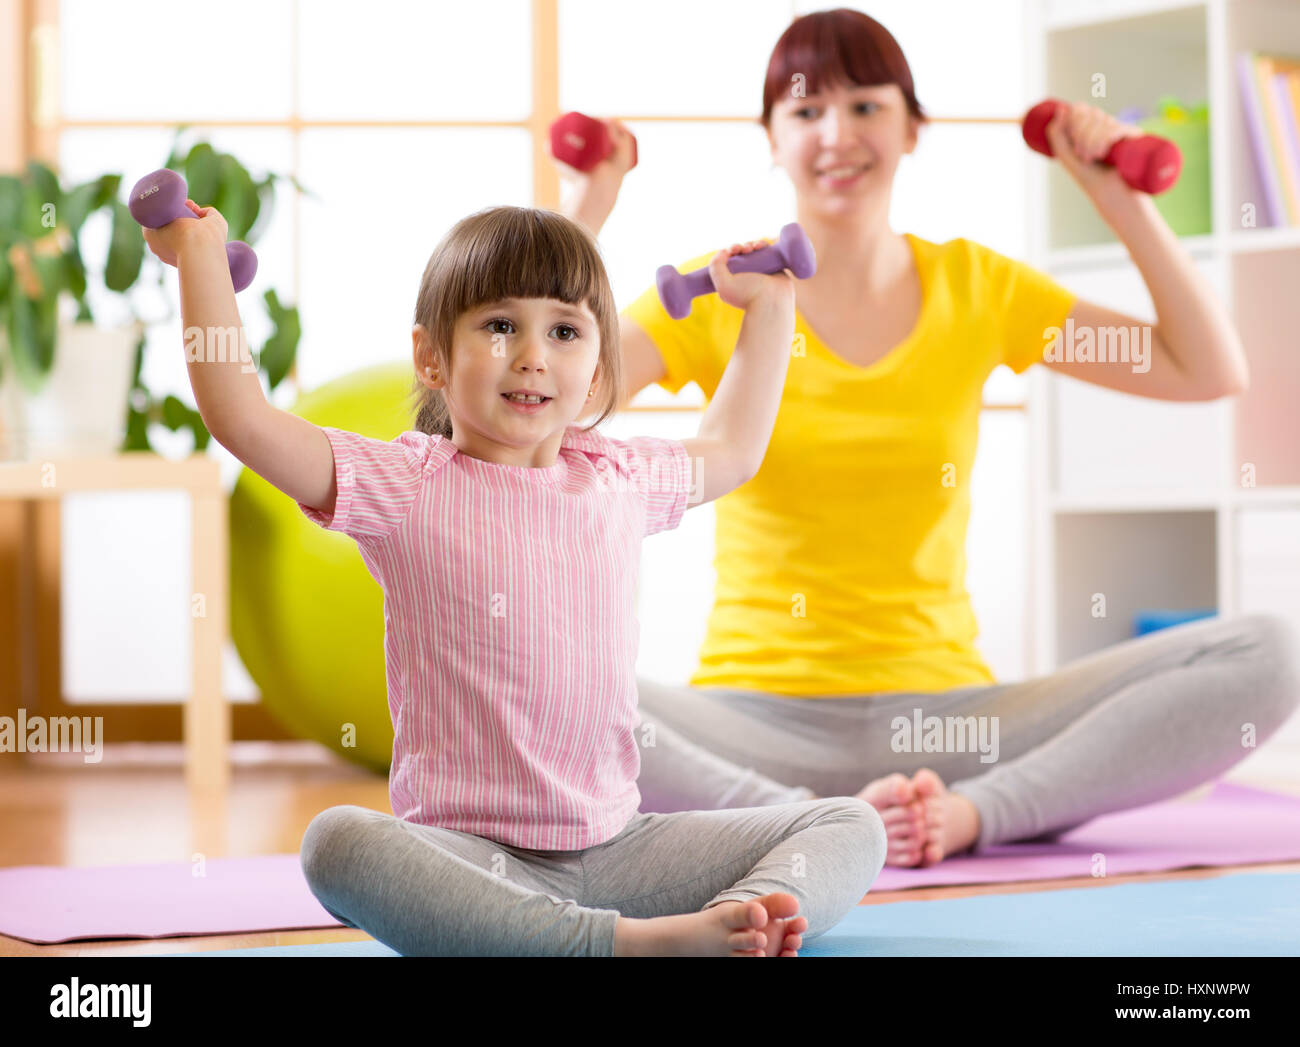 Woman and her child daughter doing fitness exercises with dumbbells - Stock Image